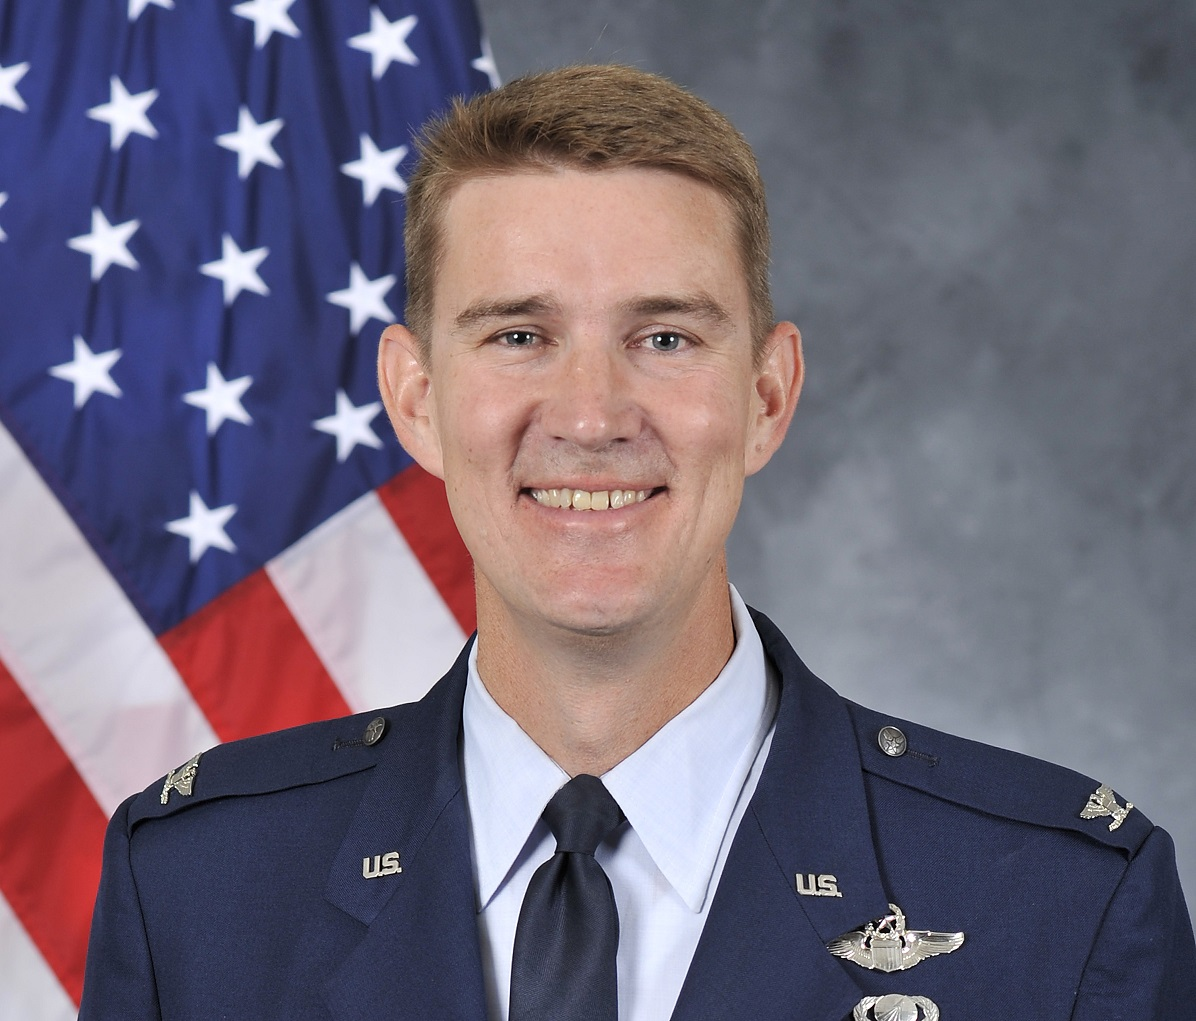 Fired wing commander under investigation for alleged sexual misconduct